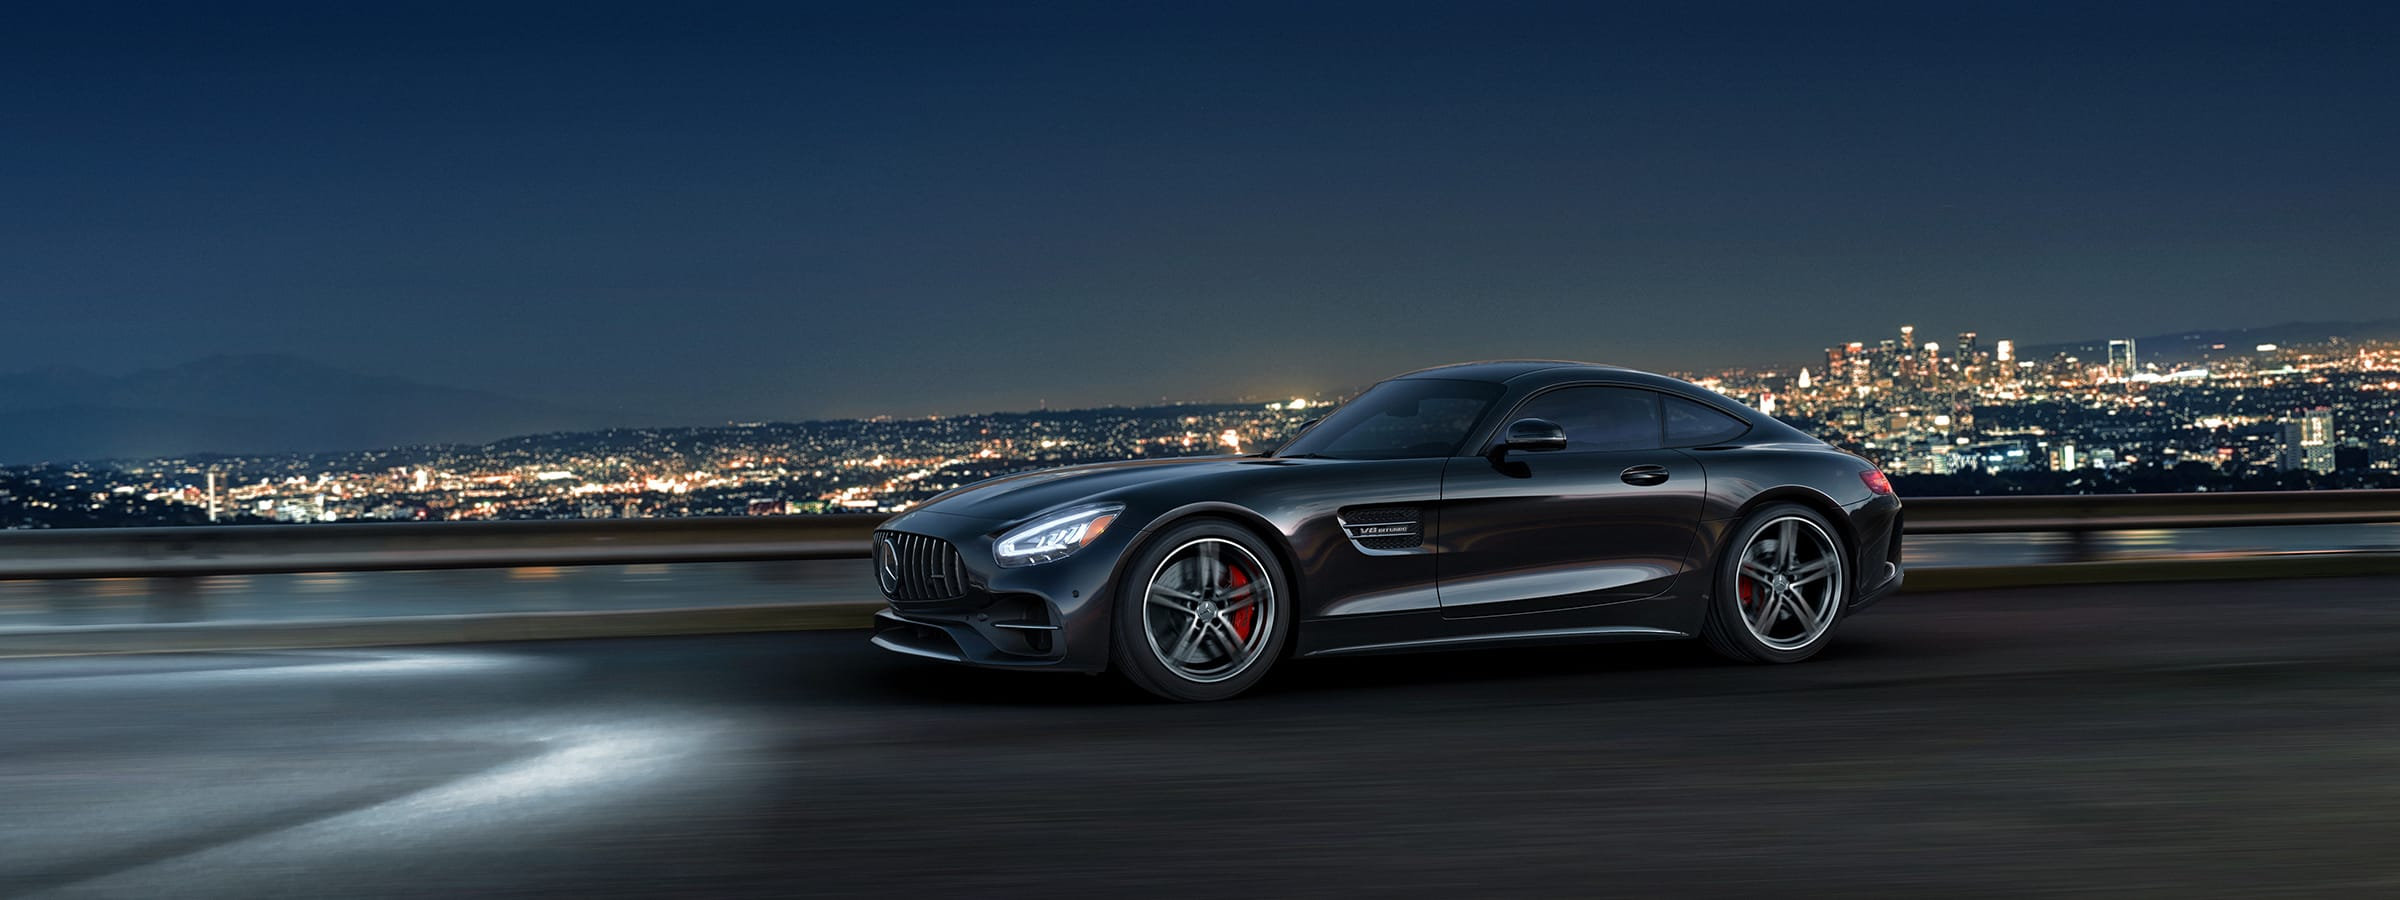 Mercedes Amg Gt Coupe High Performance Sports Car